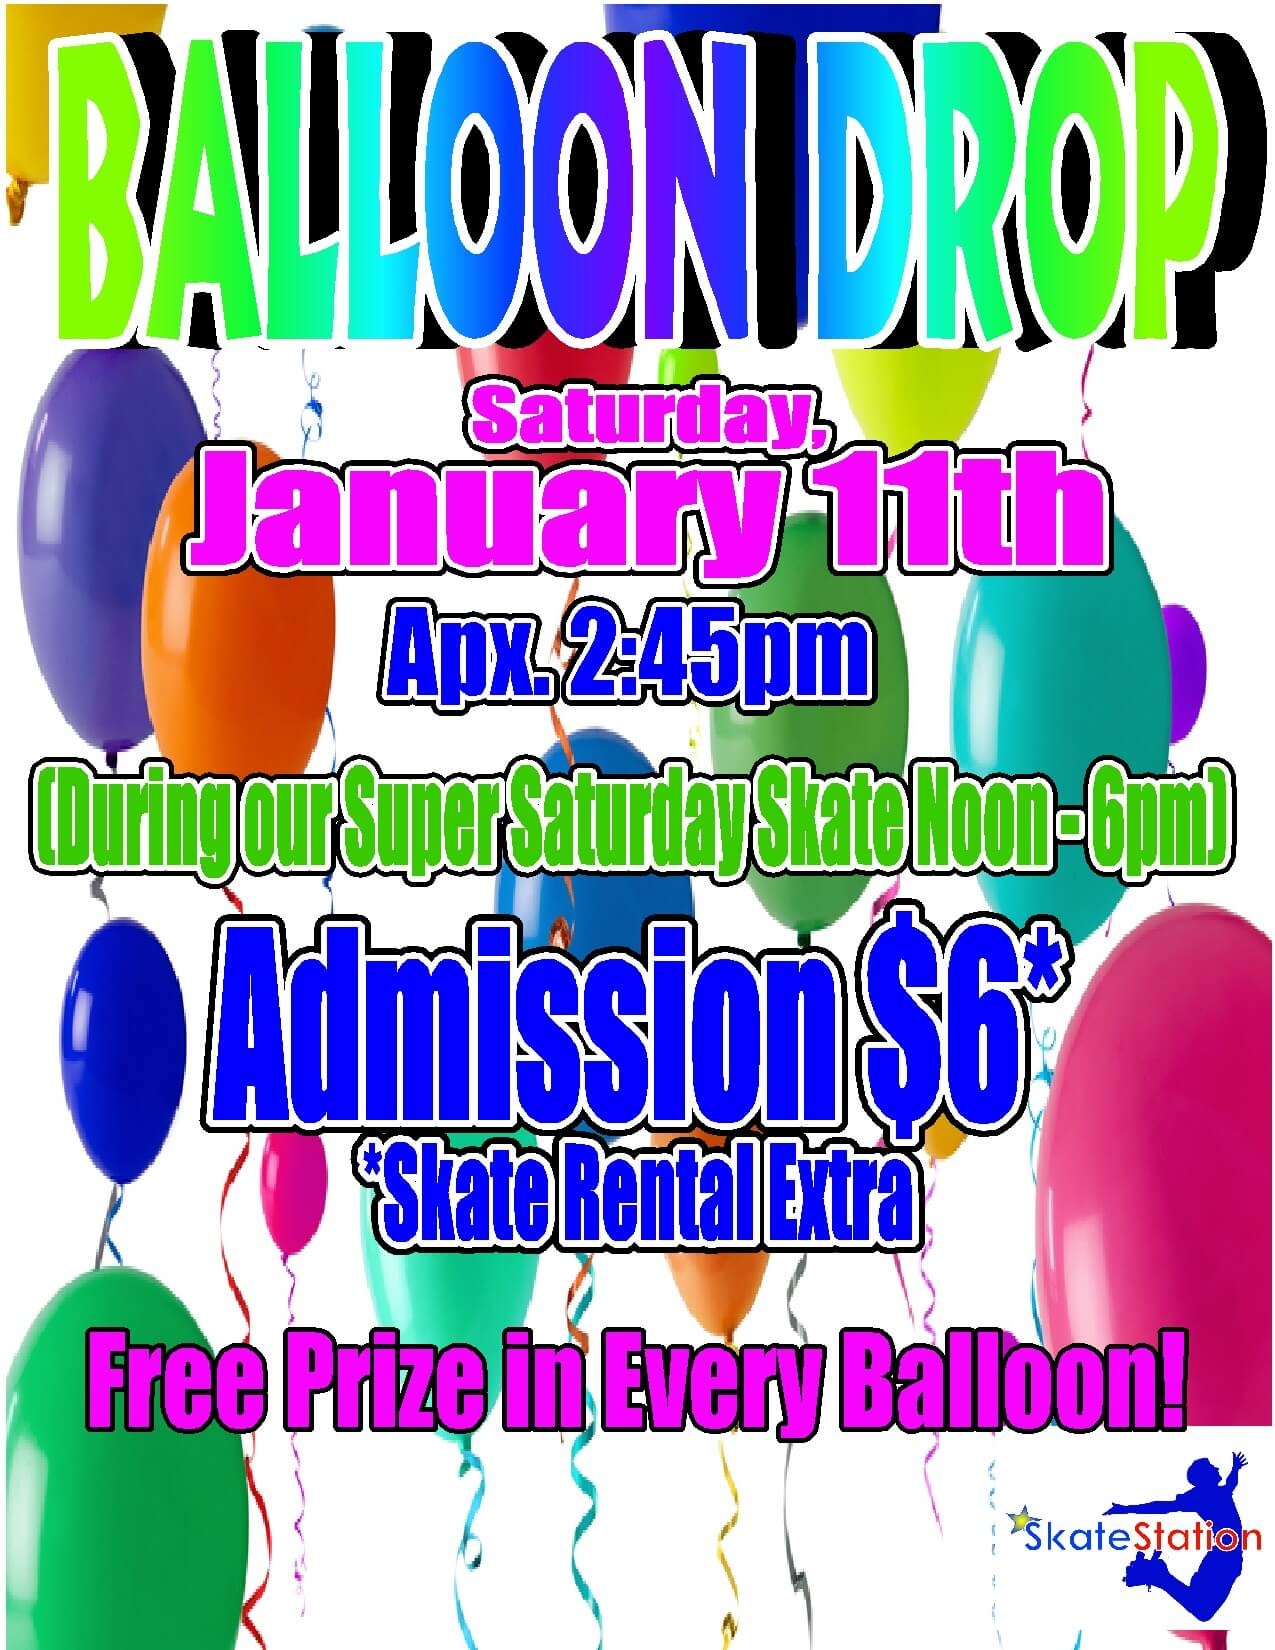 Balloon Drop Jan 2014